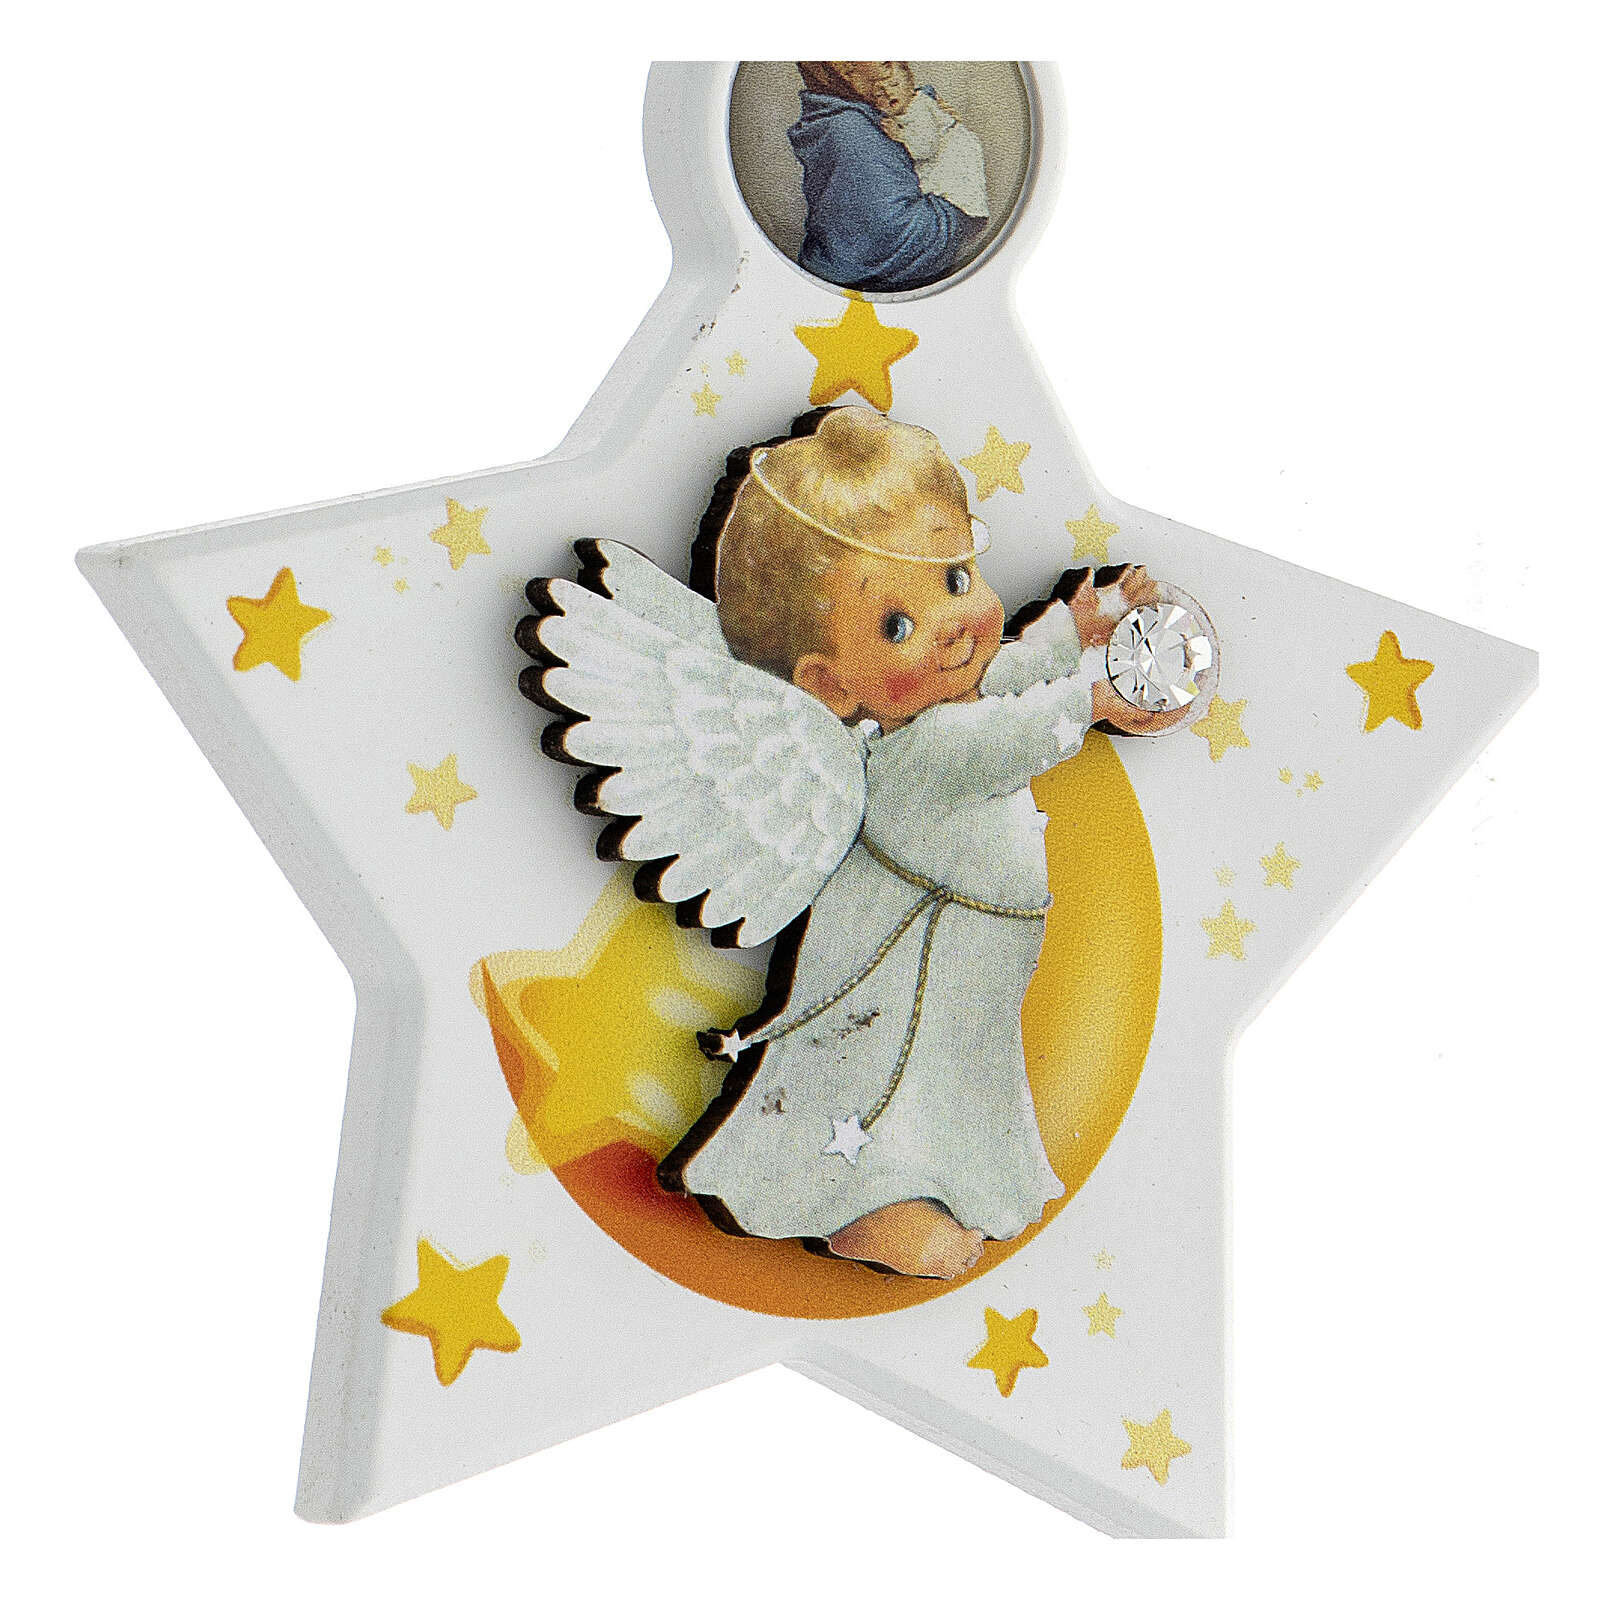 Above crib white star with angel 4